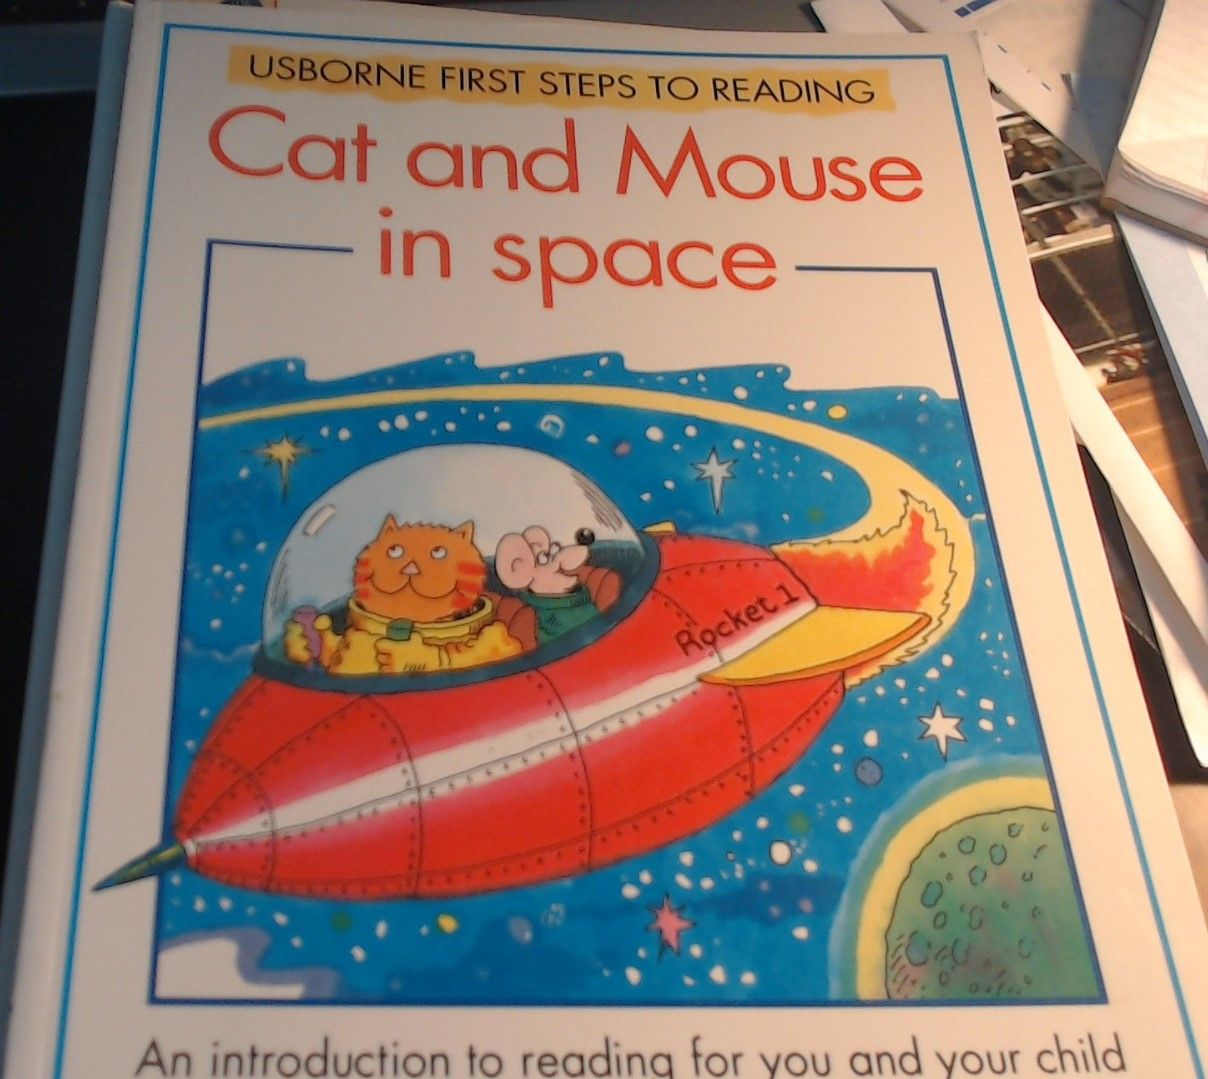 Cat and Mouse in Space - Usborne First Steps to Reading - Paperback -  Published by Usborne 1994 - CTR #20